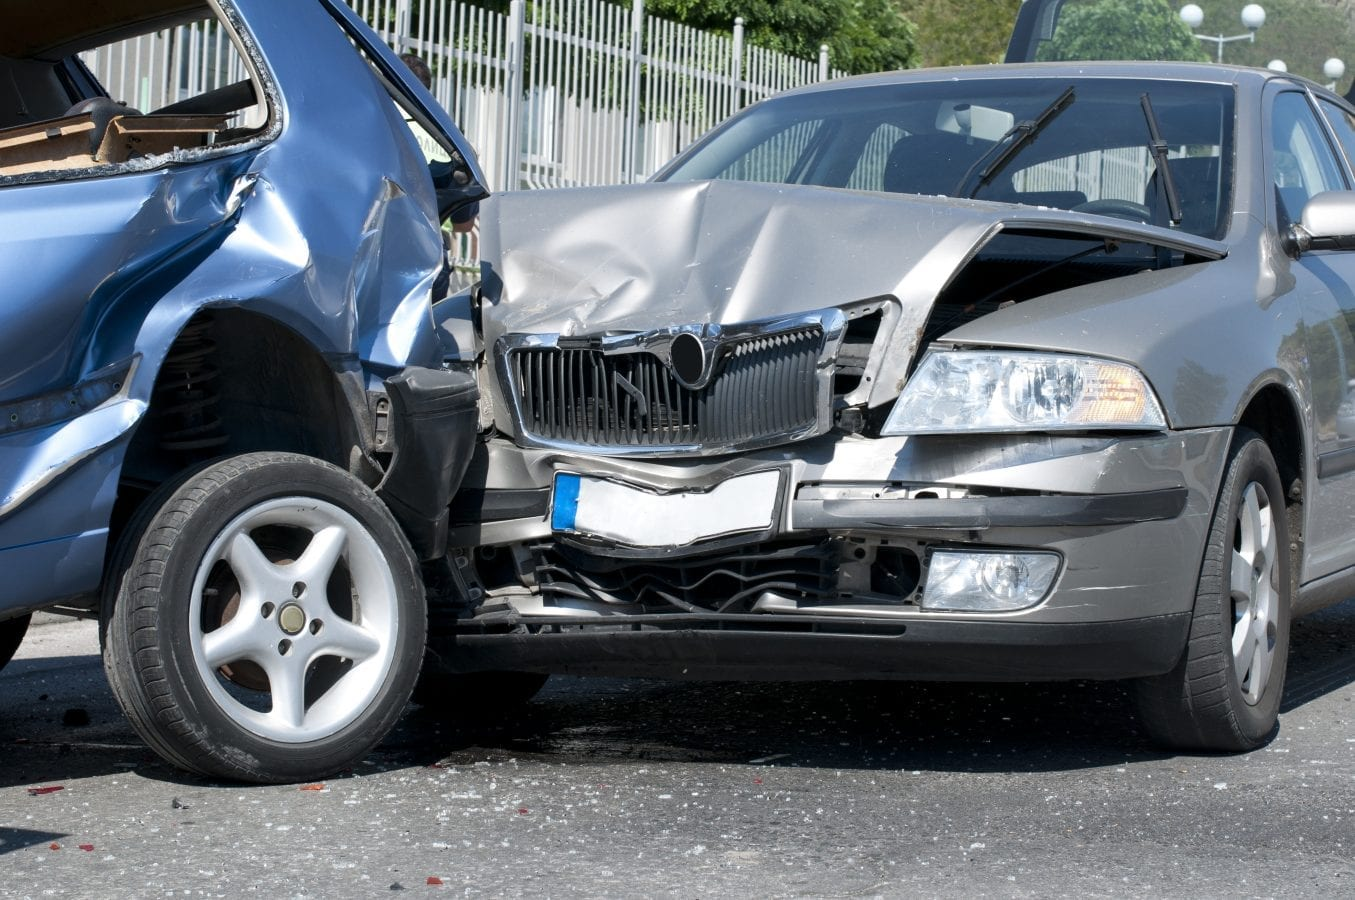 A situation that requires a car accident lawyer in Miami, FL